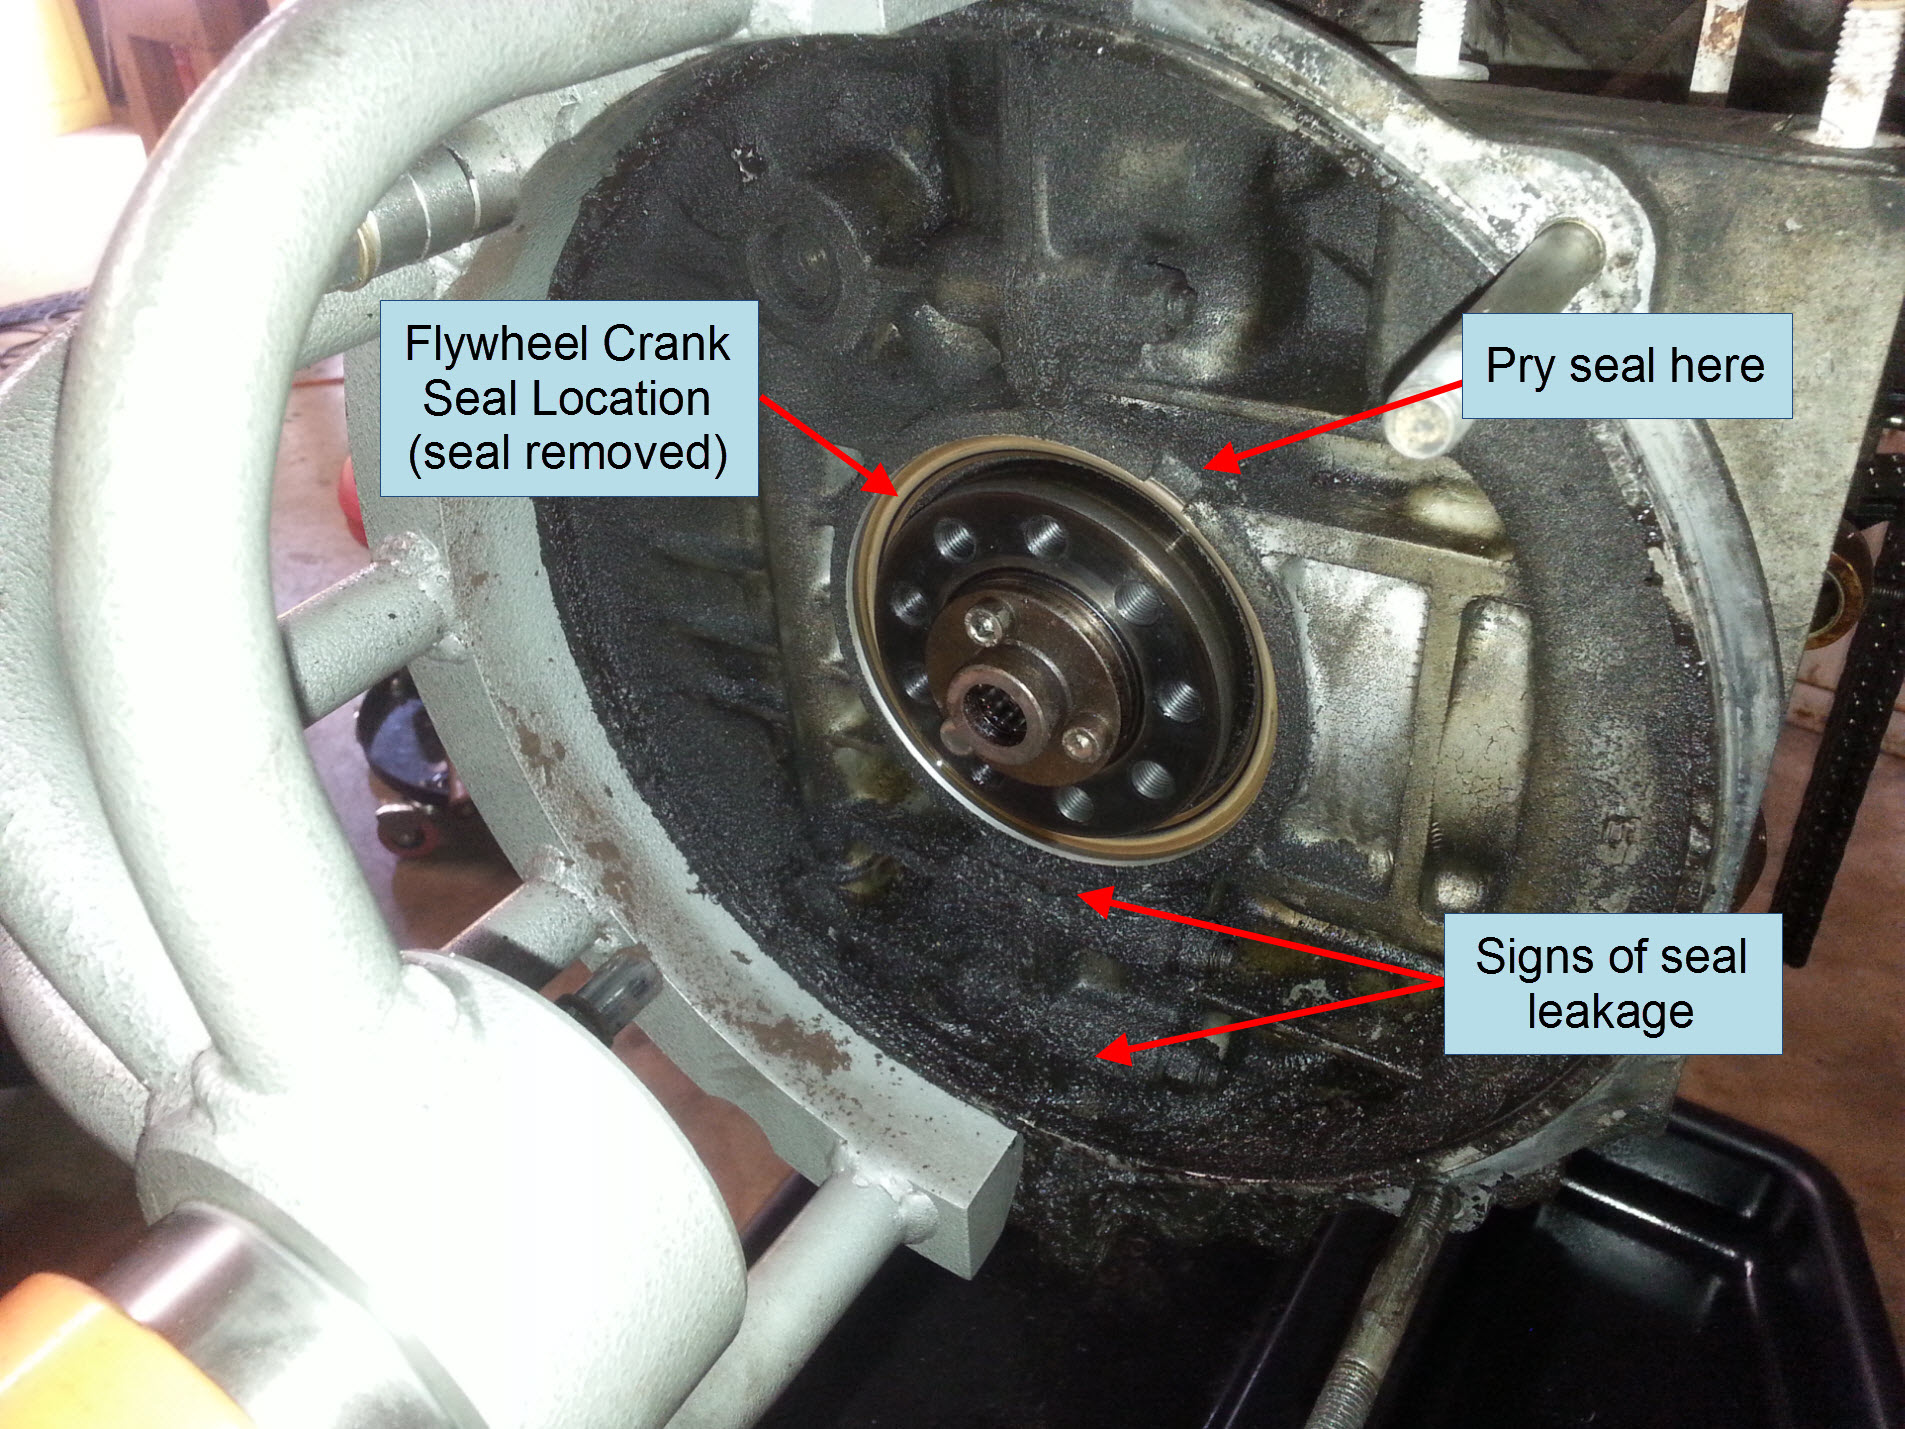 Air-cooled Porsche 911 flywheel crank seal removal.